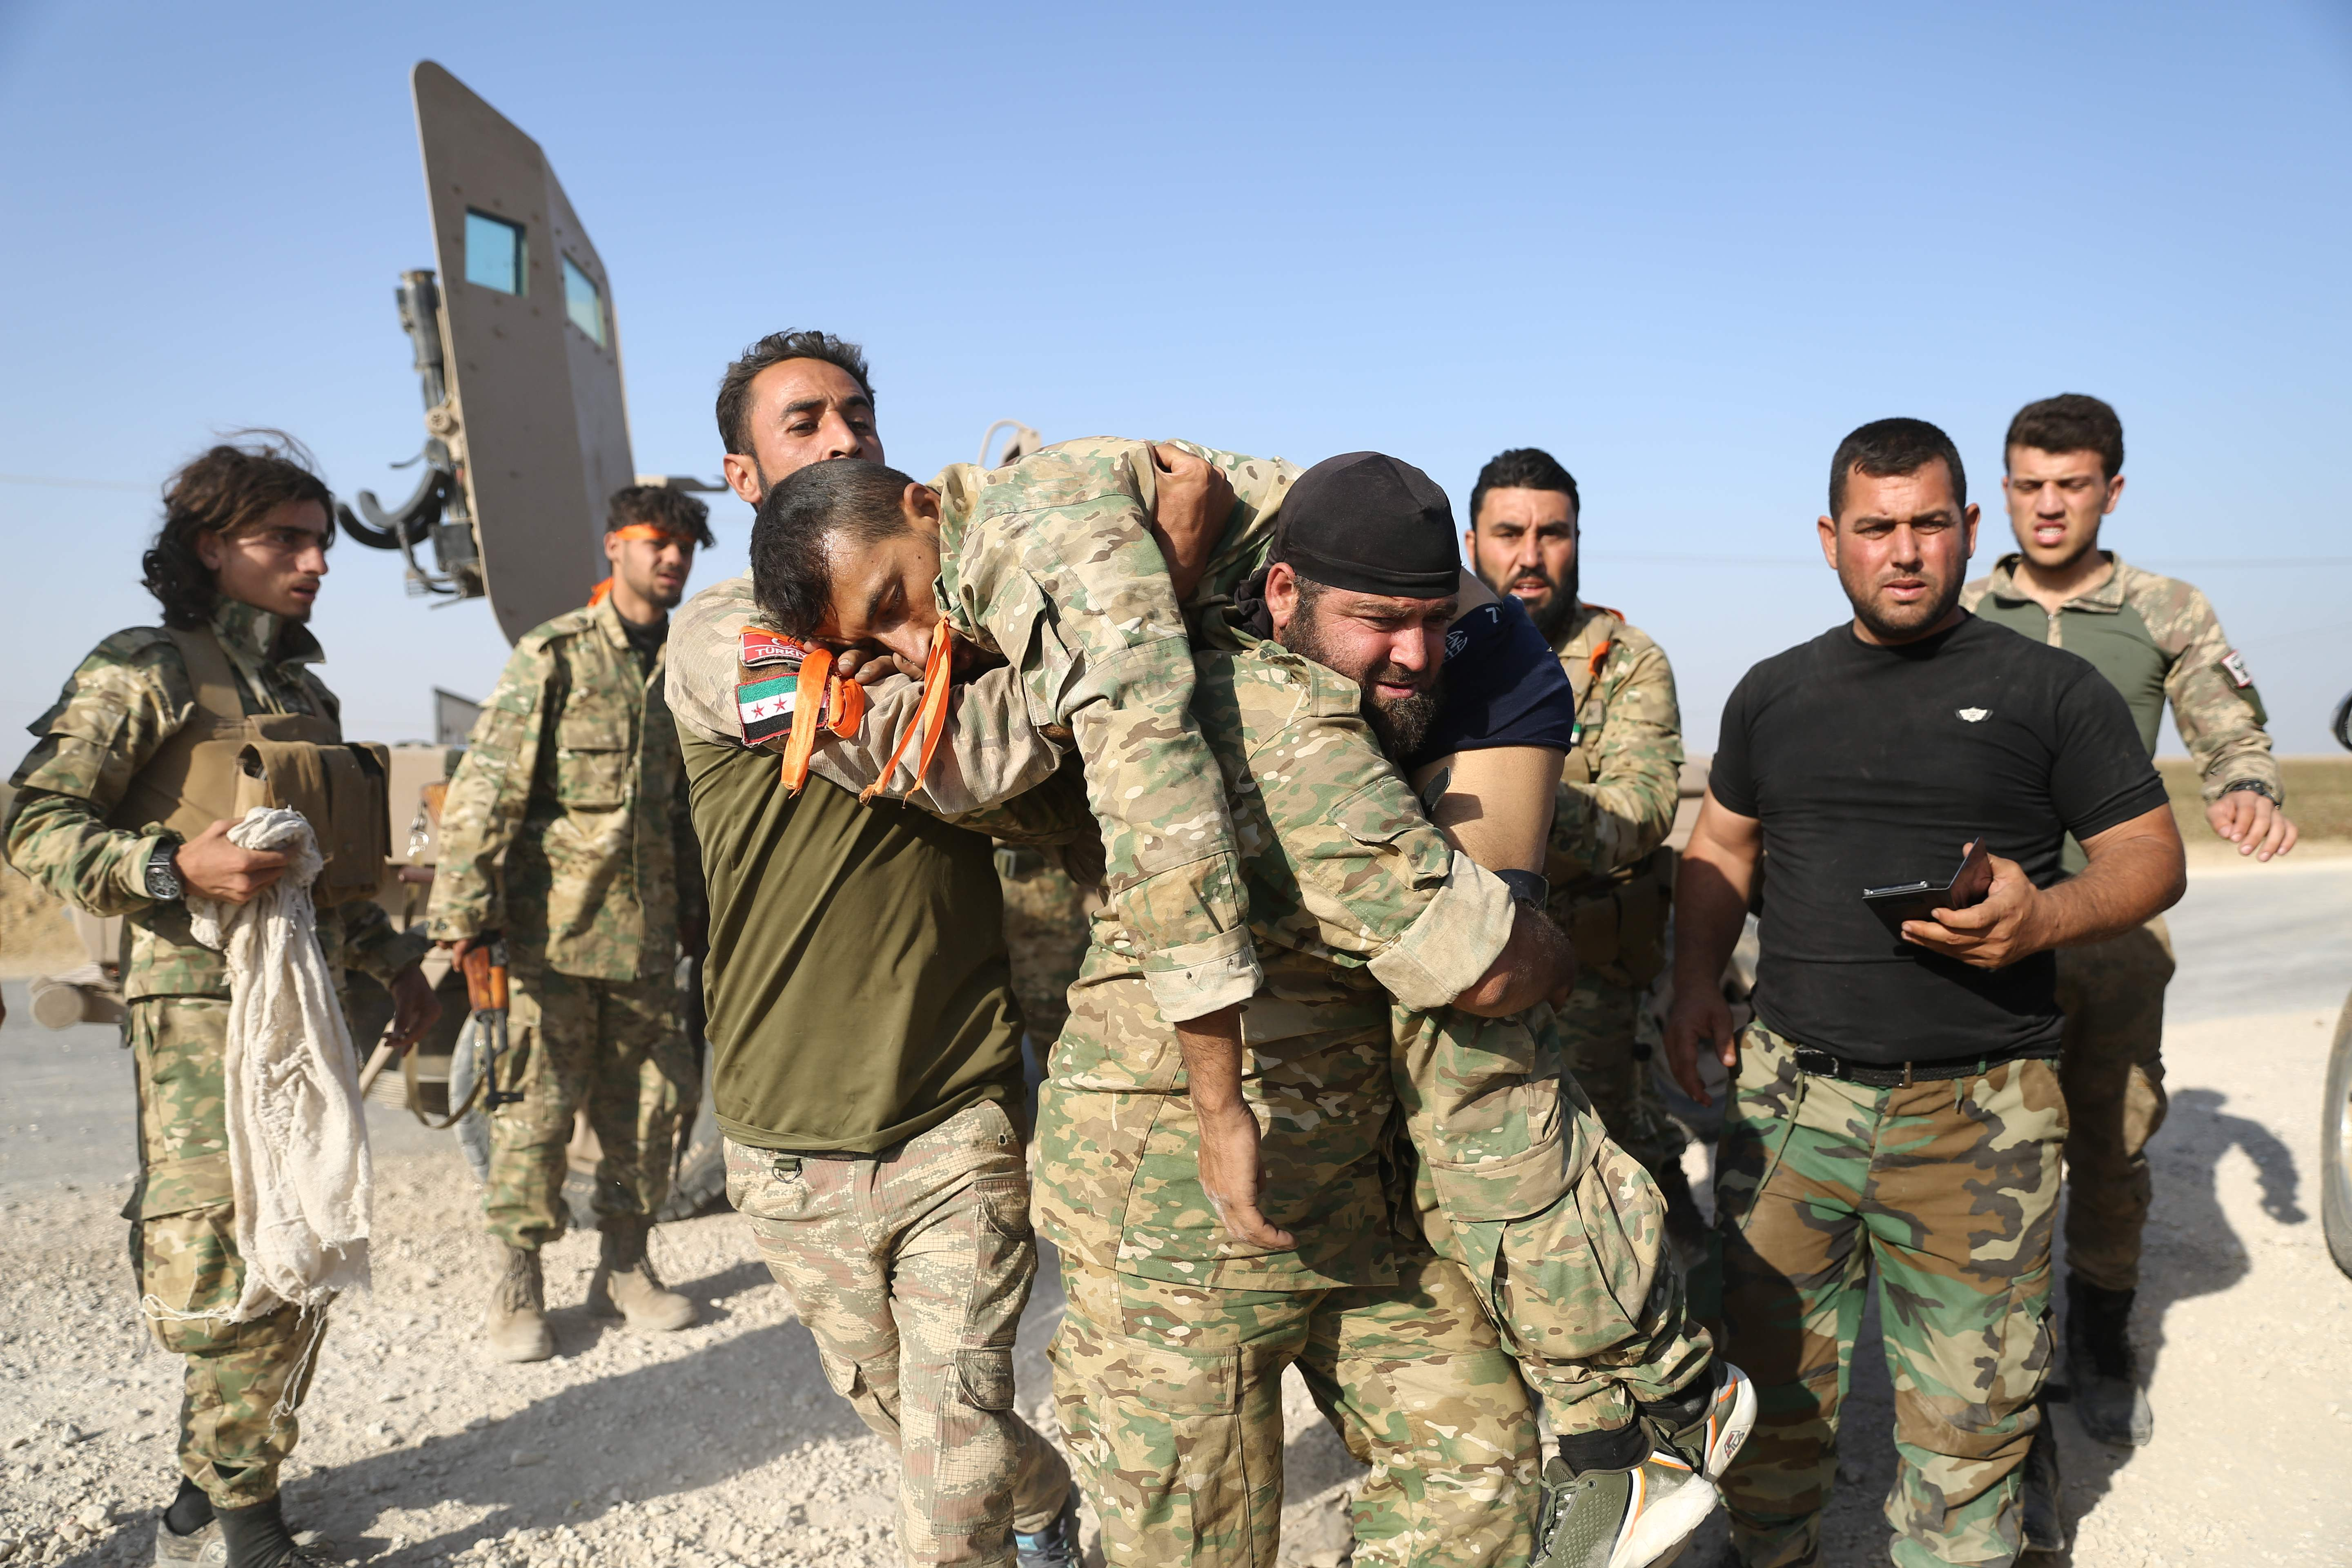 Pentagon to withdraw 1,000 troops from Syria within weeks, pulling back in fight against ISIS